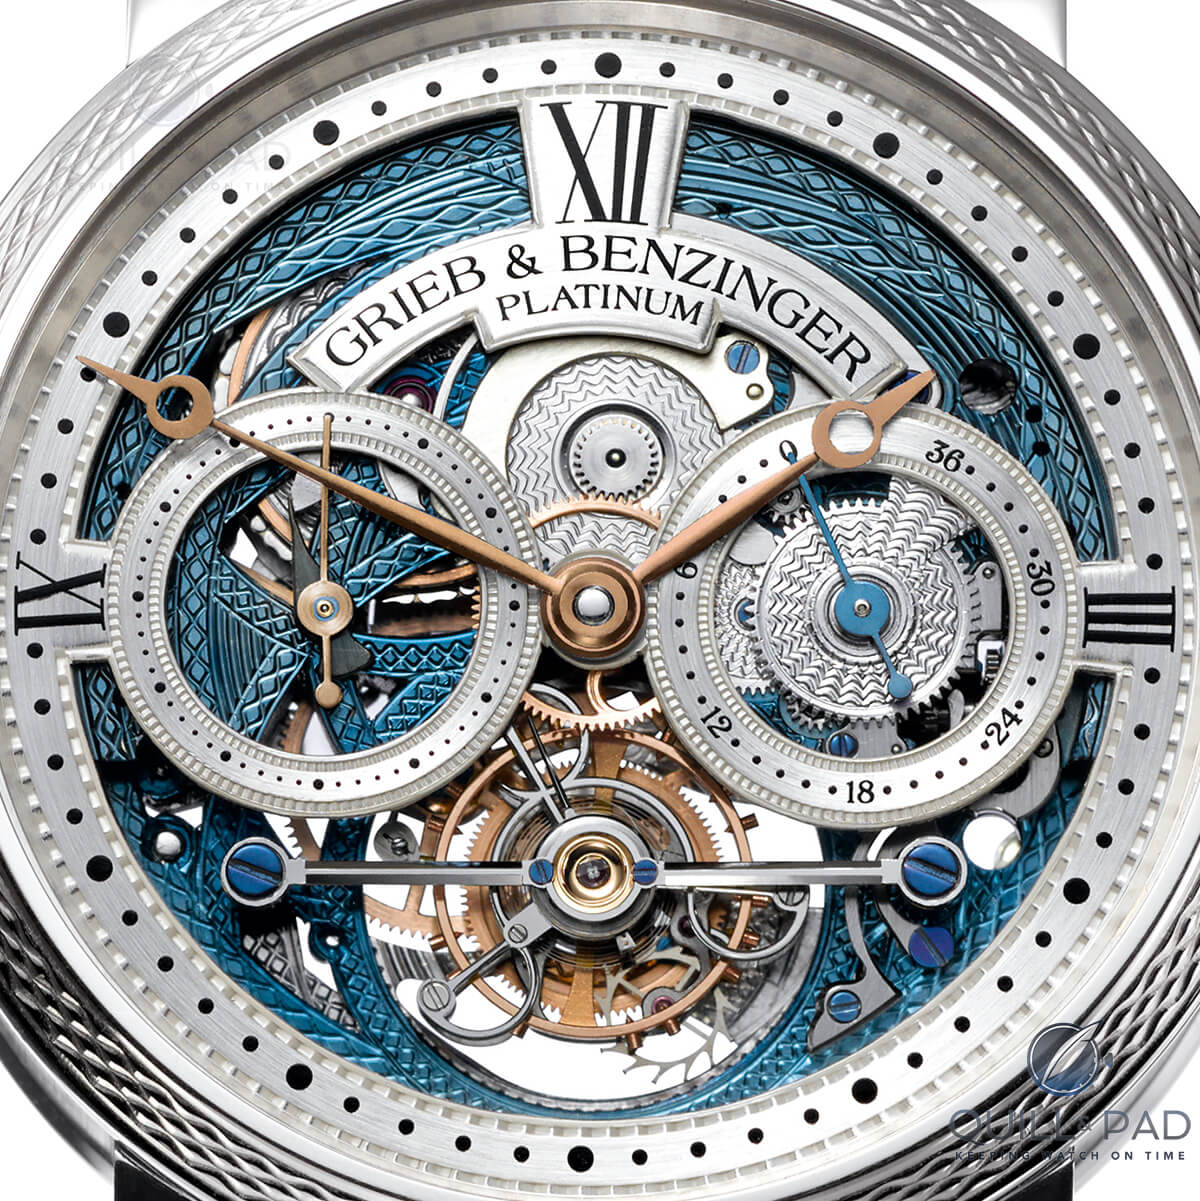 Intricately skeletonized dial of the Grieb & Benzinger Blue Merit